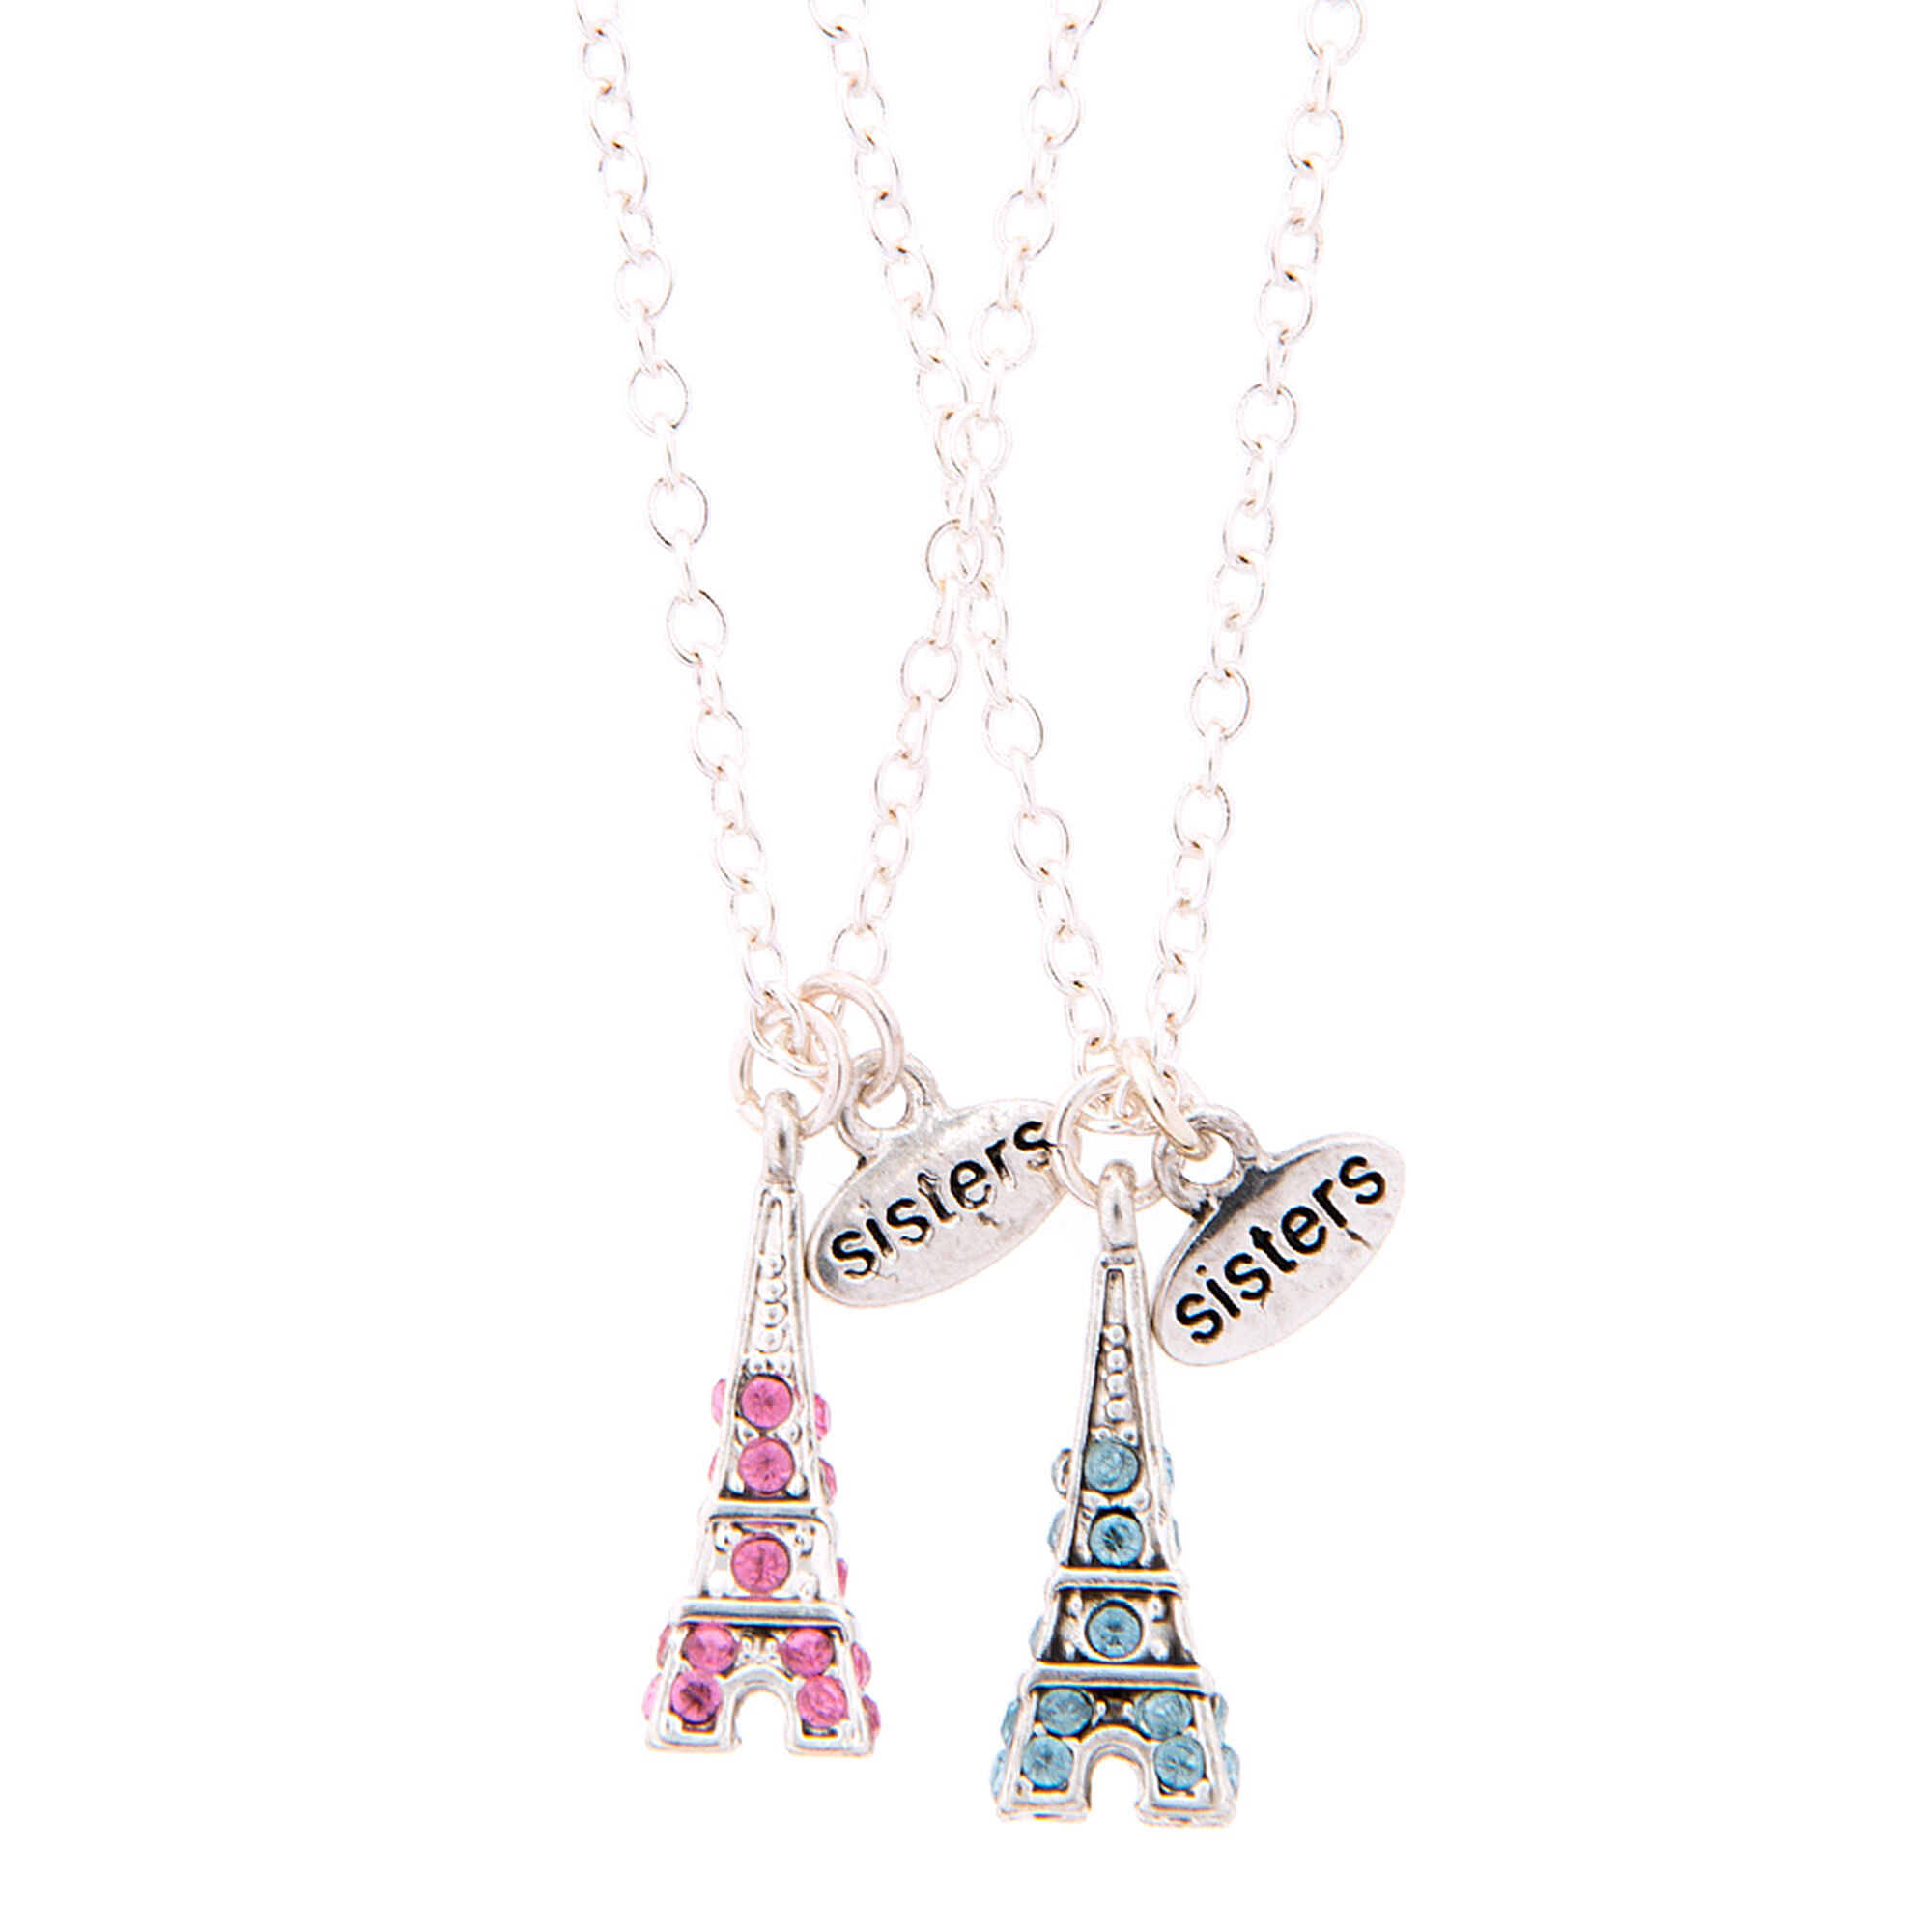 Best friends sister eiffel tower pendant necklace claires us best friends sister eiffel tower pendant necklace aloadofball Images